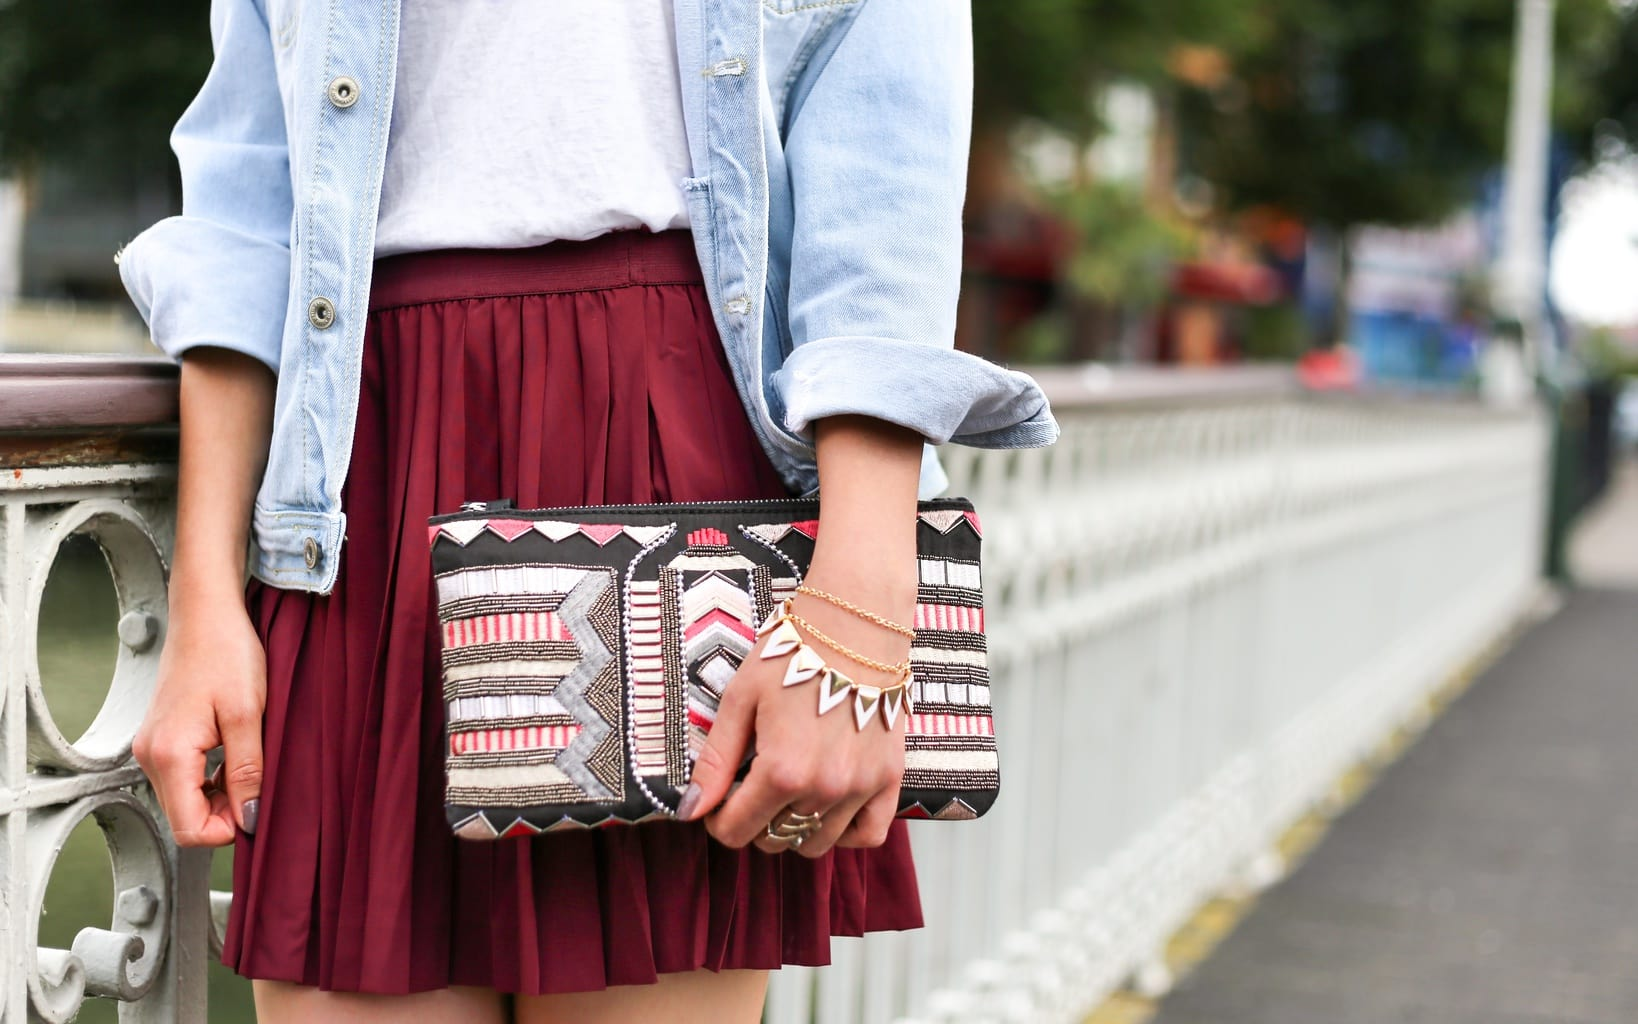 How to wear a graphic tee - girl wearing a pleated skirt, light wash denim chambray shirt, and graphic tee shirt with bracelets and a patterned clutch